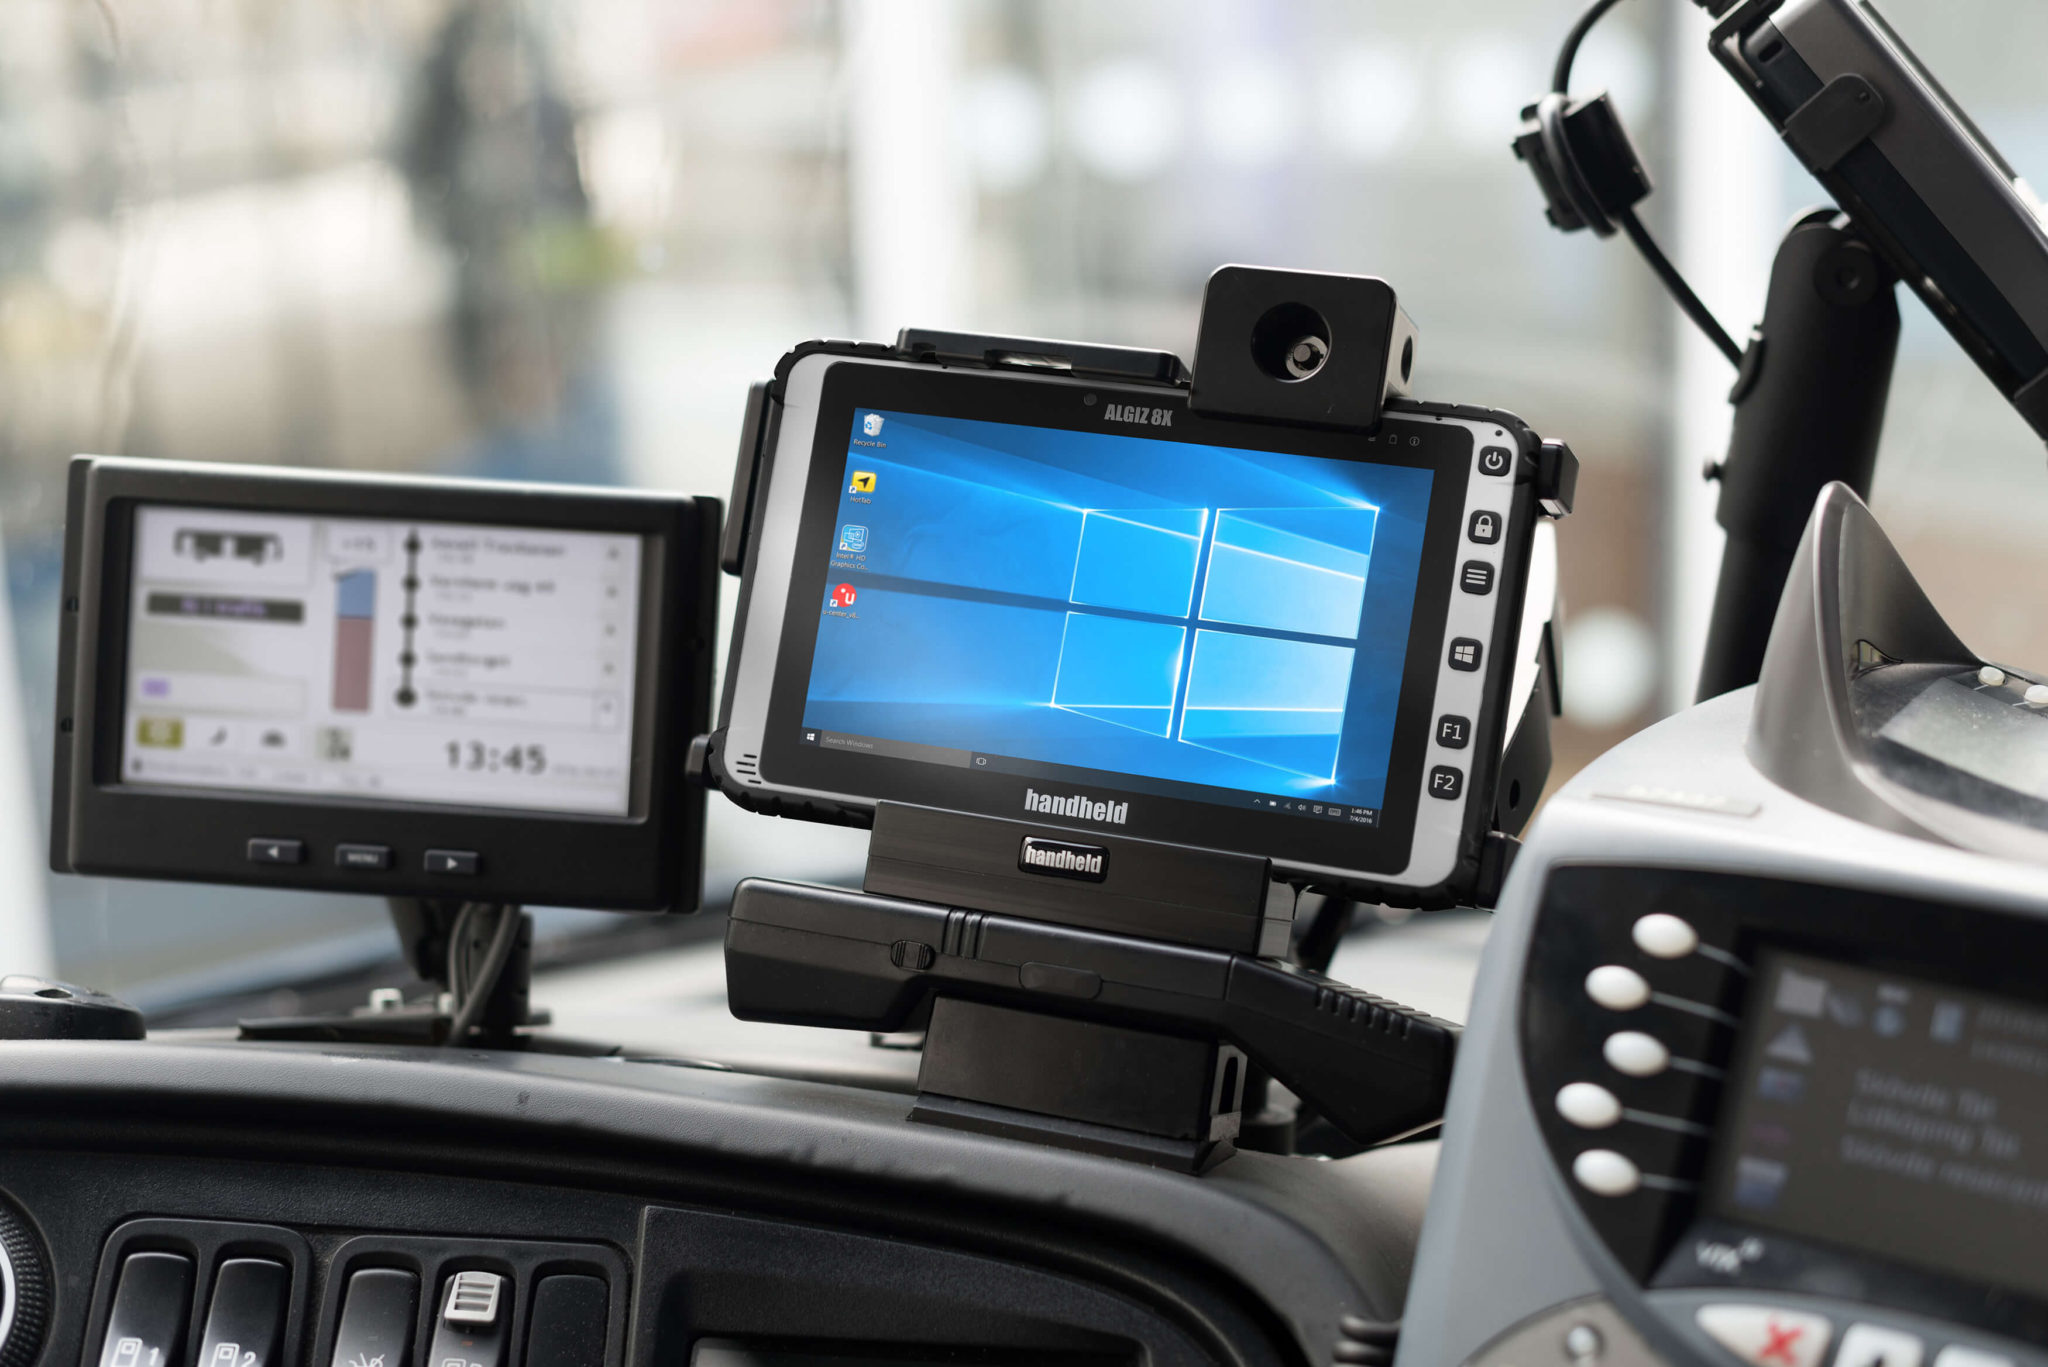 Algiz-8X-rugged-tablet-vehicle-mount(1)